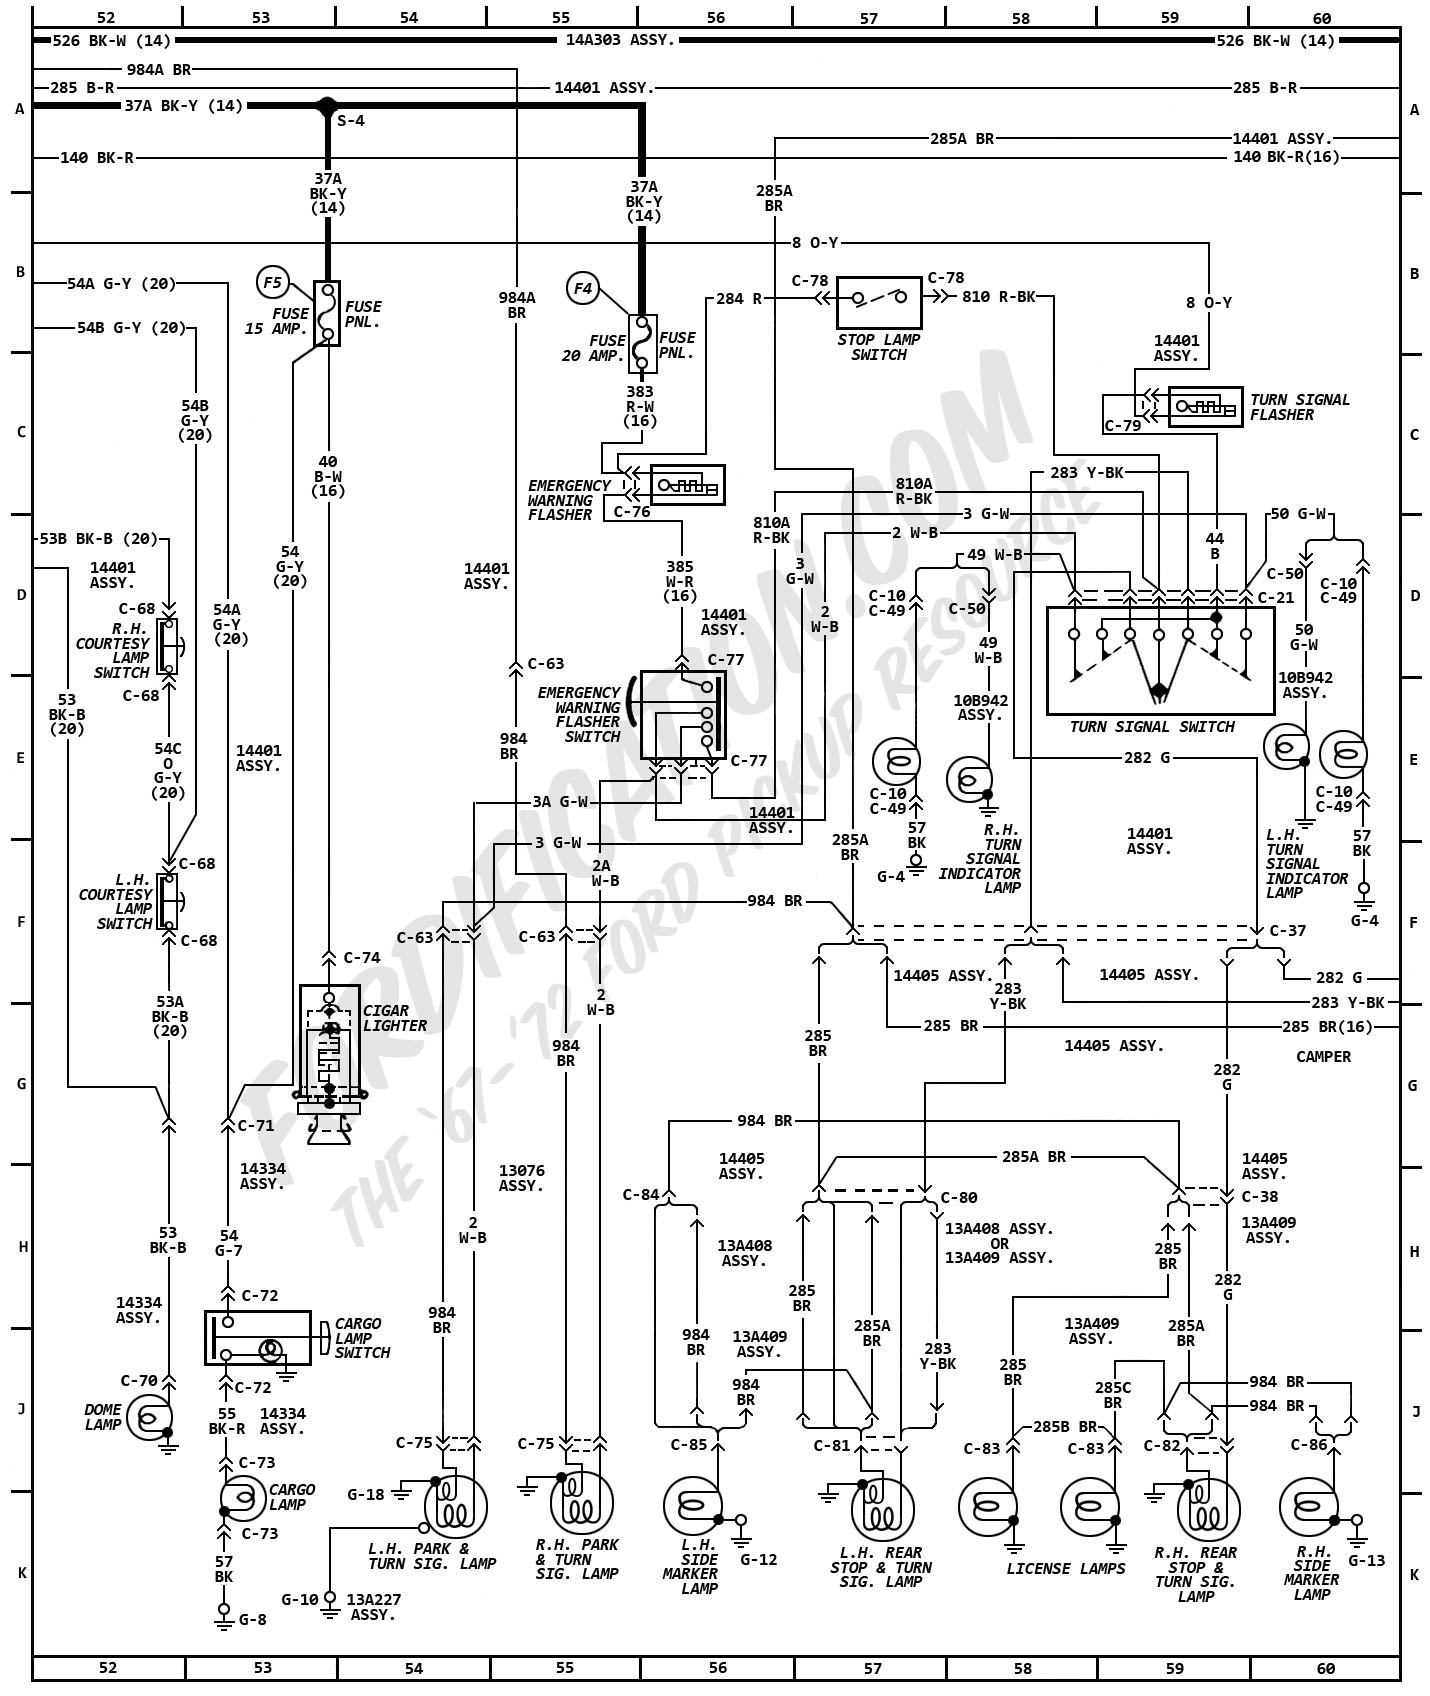 1972 Ford Truck Wiring Diagrams F550 Diagram For Alt Cargo Lamp J 53 6